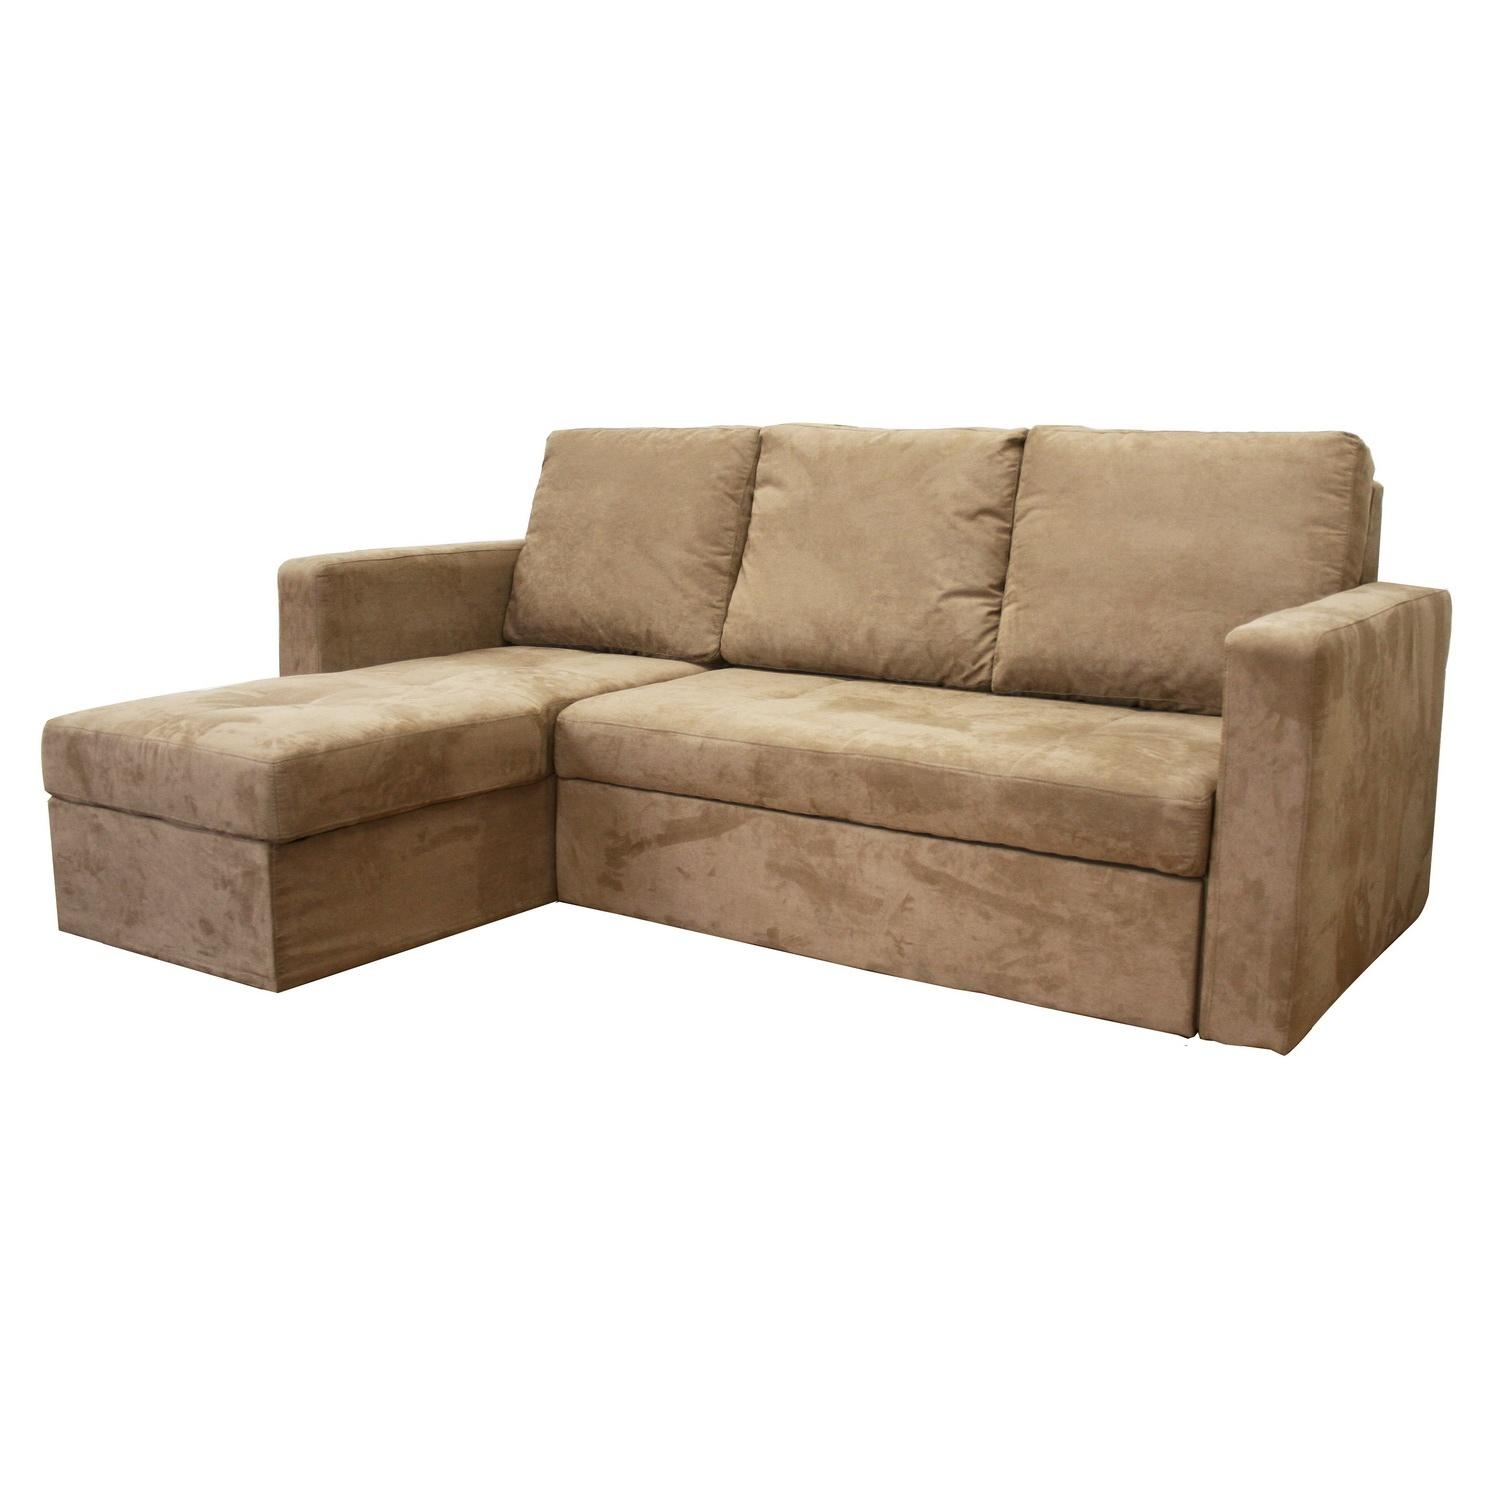 Furniture: Nice Cream Ikea Sectionals Couch For Elegant Living Inside Nice Sectional Couches (View 20 of 20)